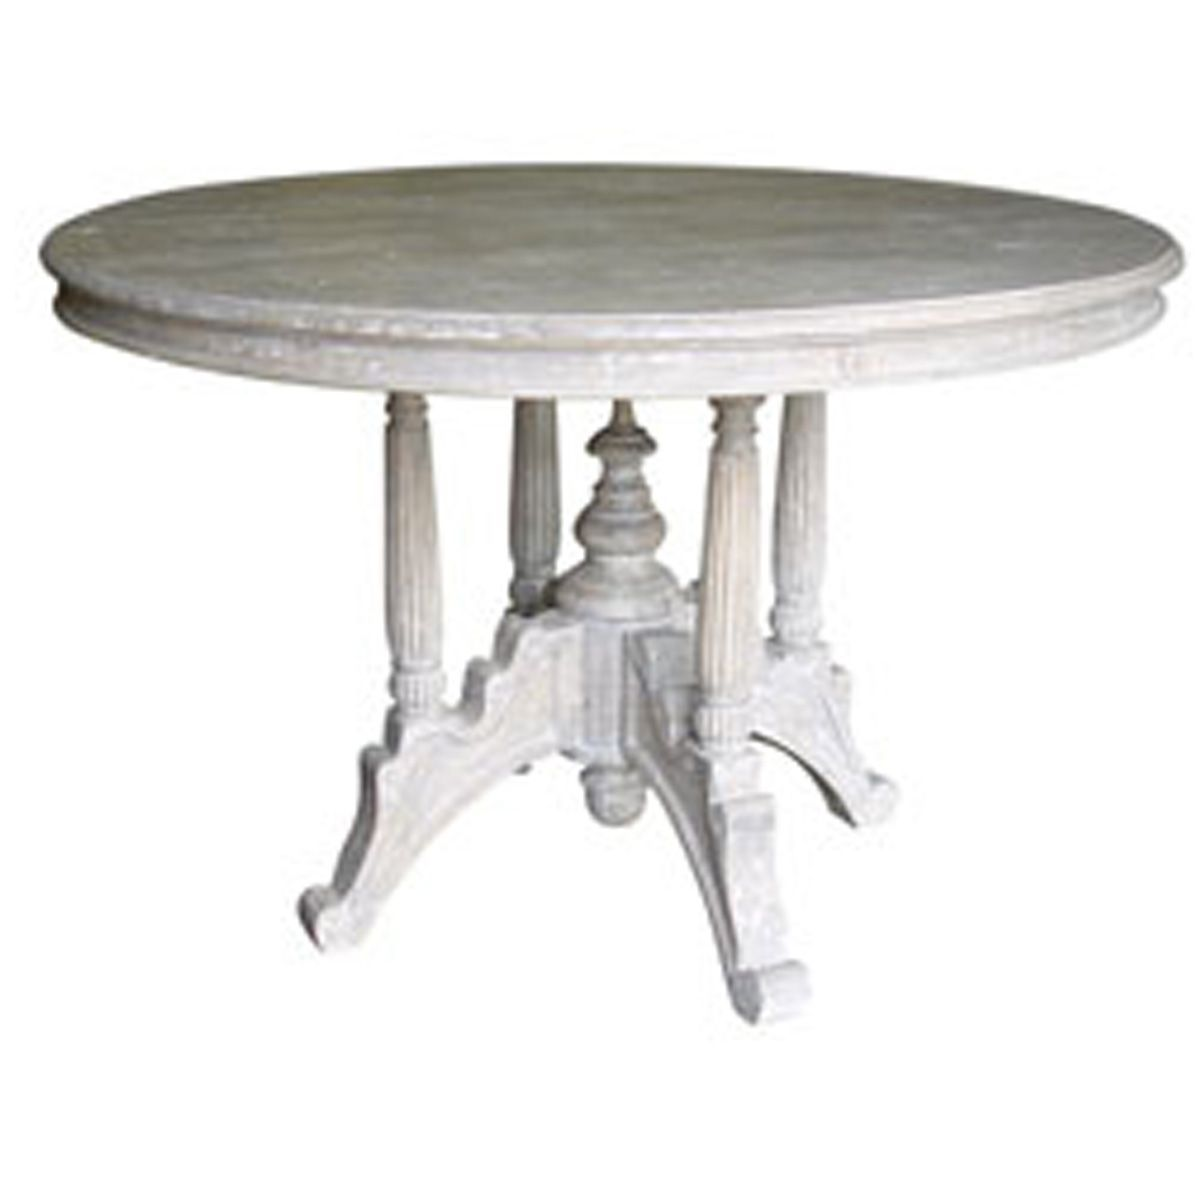 raffles cottage style round dining table 46 w x 46d x 30h